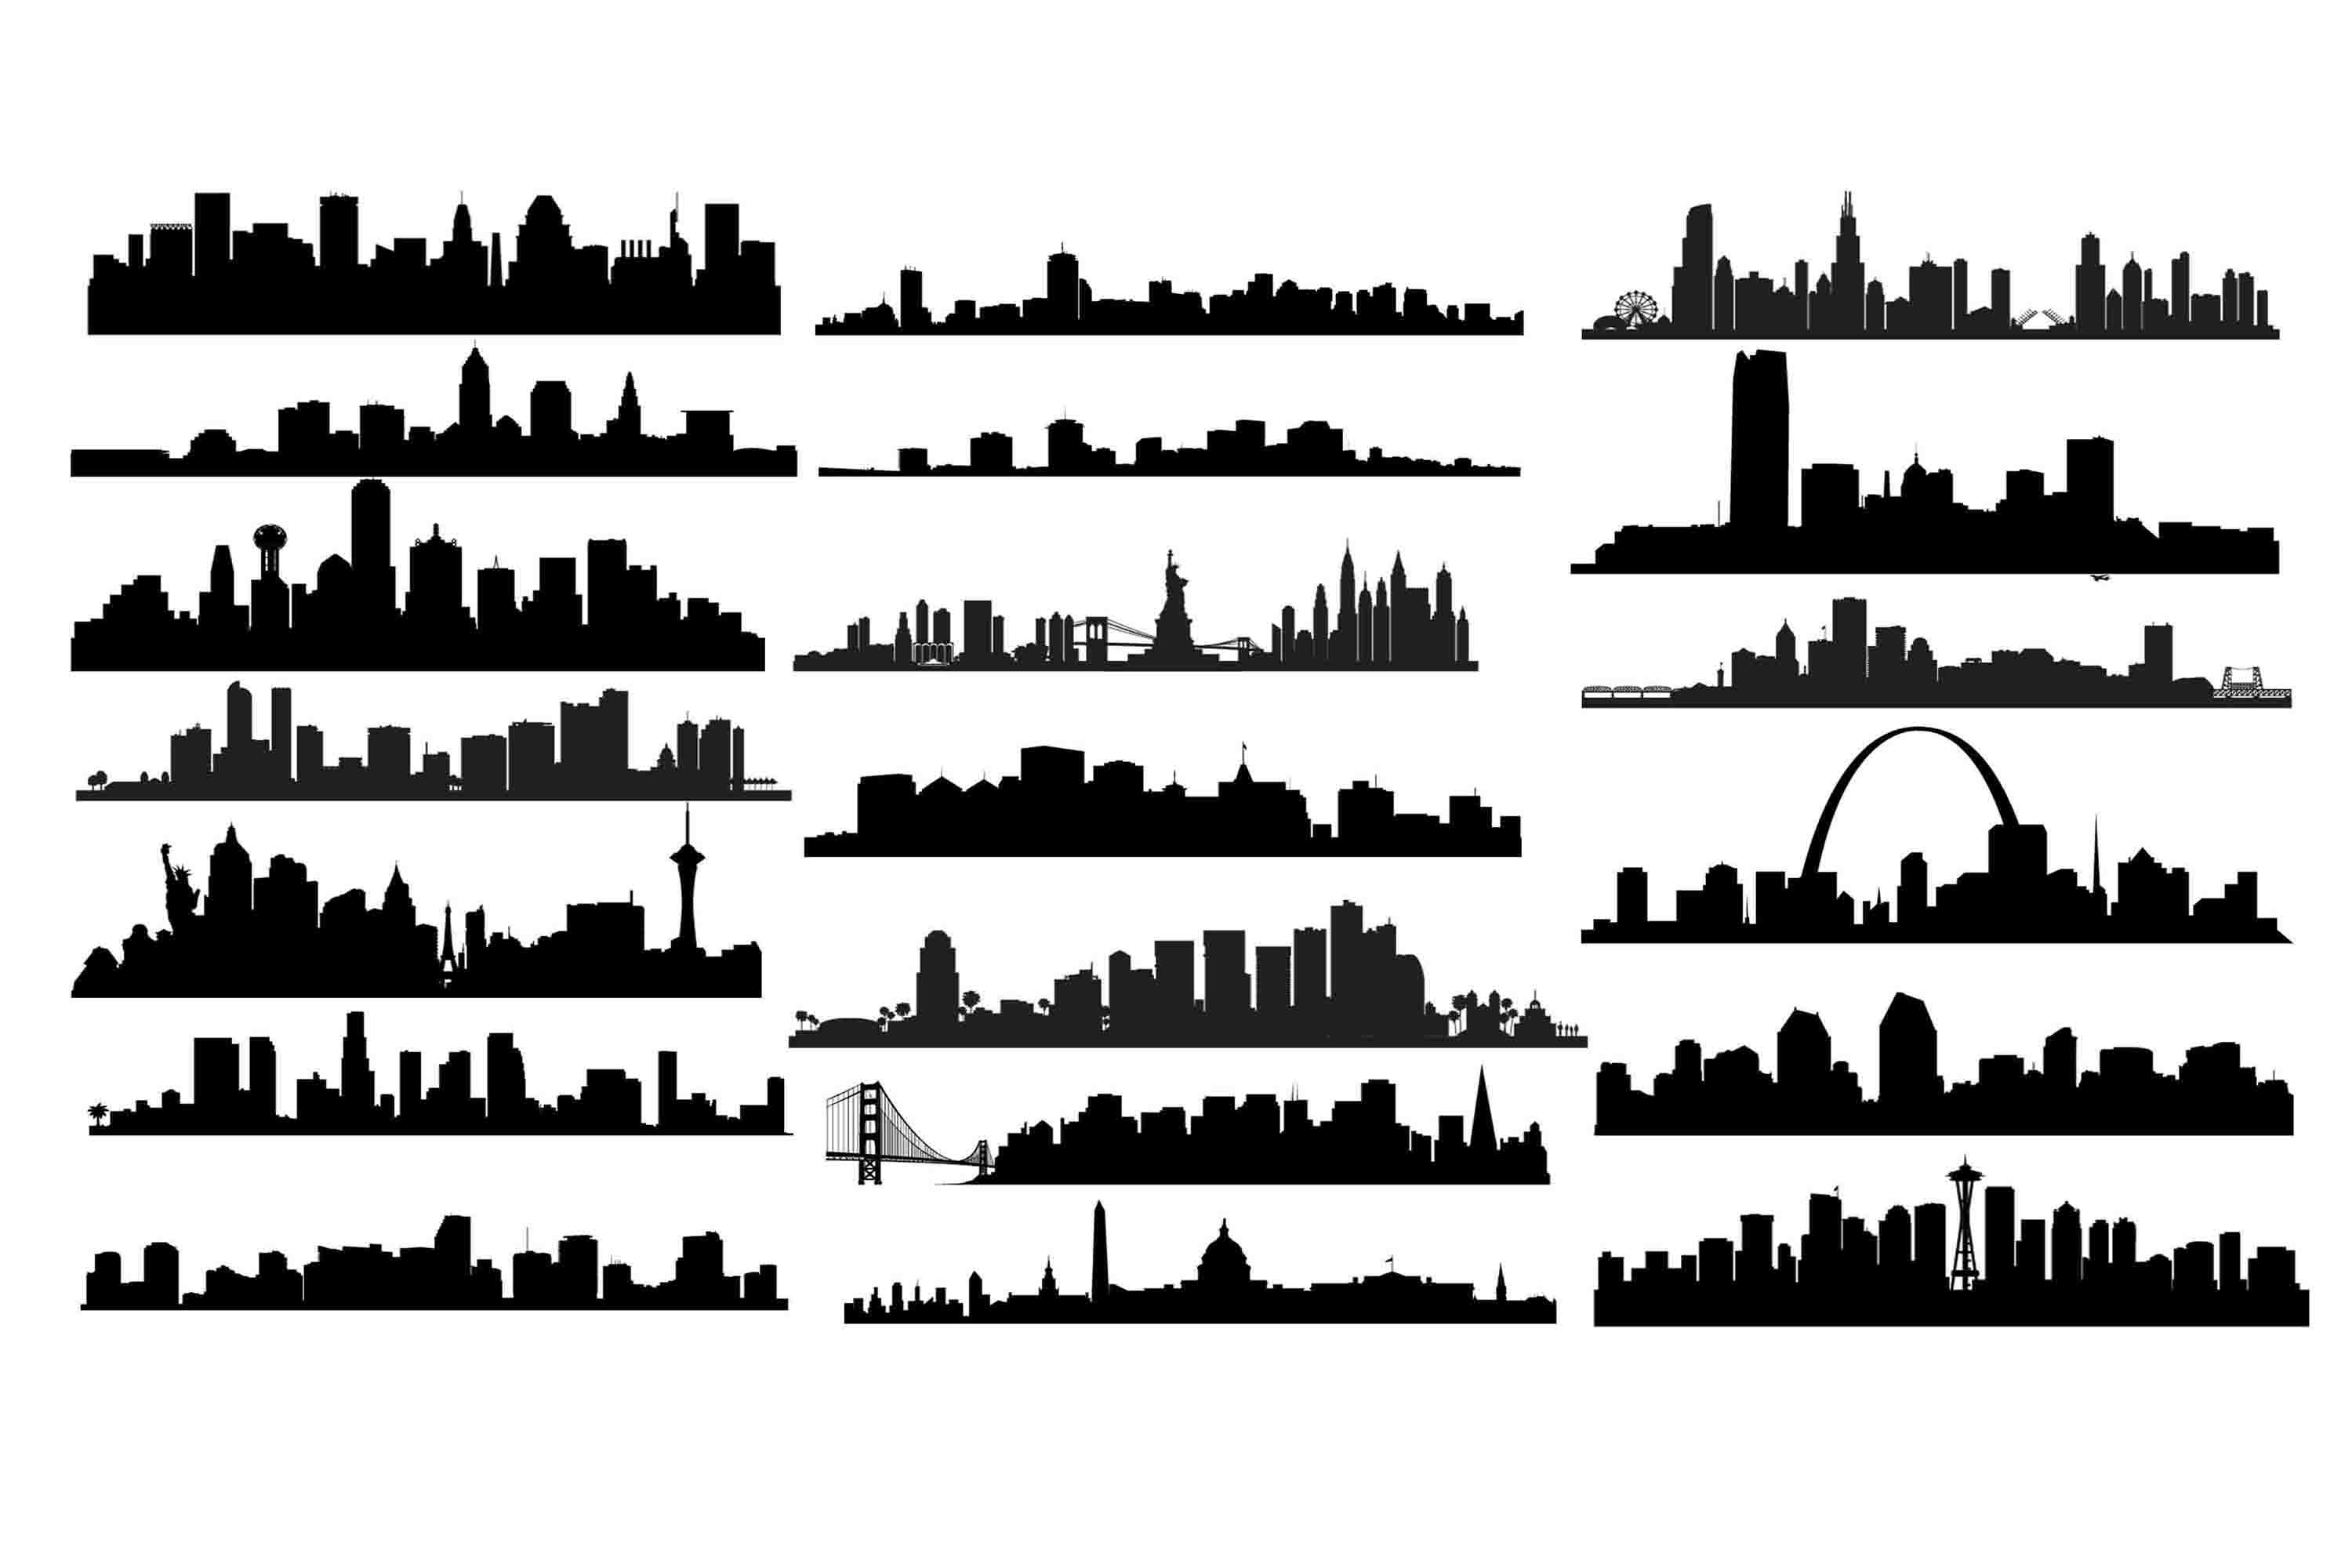 Download Free Us City Skyline Graphic By Retrowalldecor Creative Fabrica for Cricut Explore, Silhouette and other cutting machines.